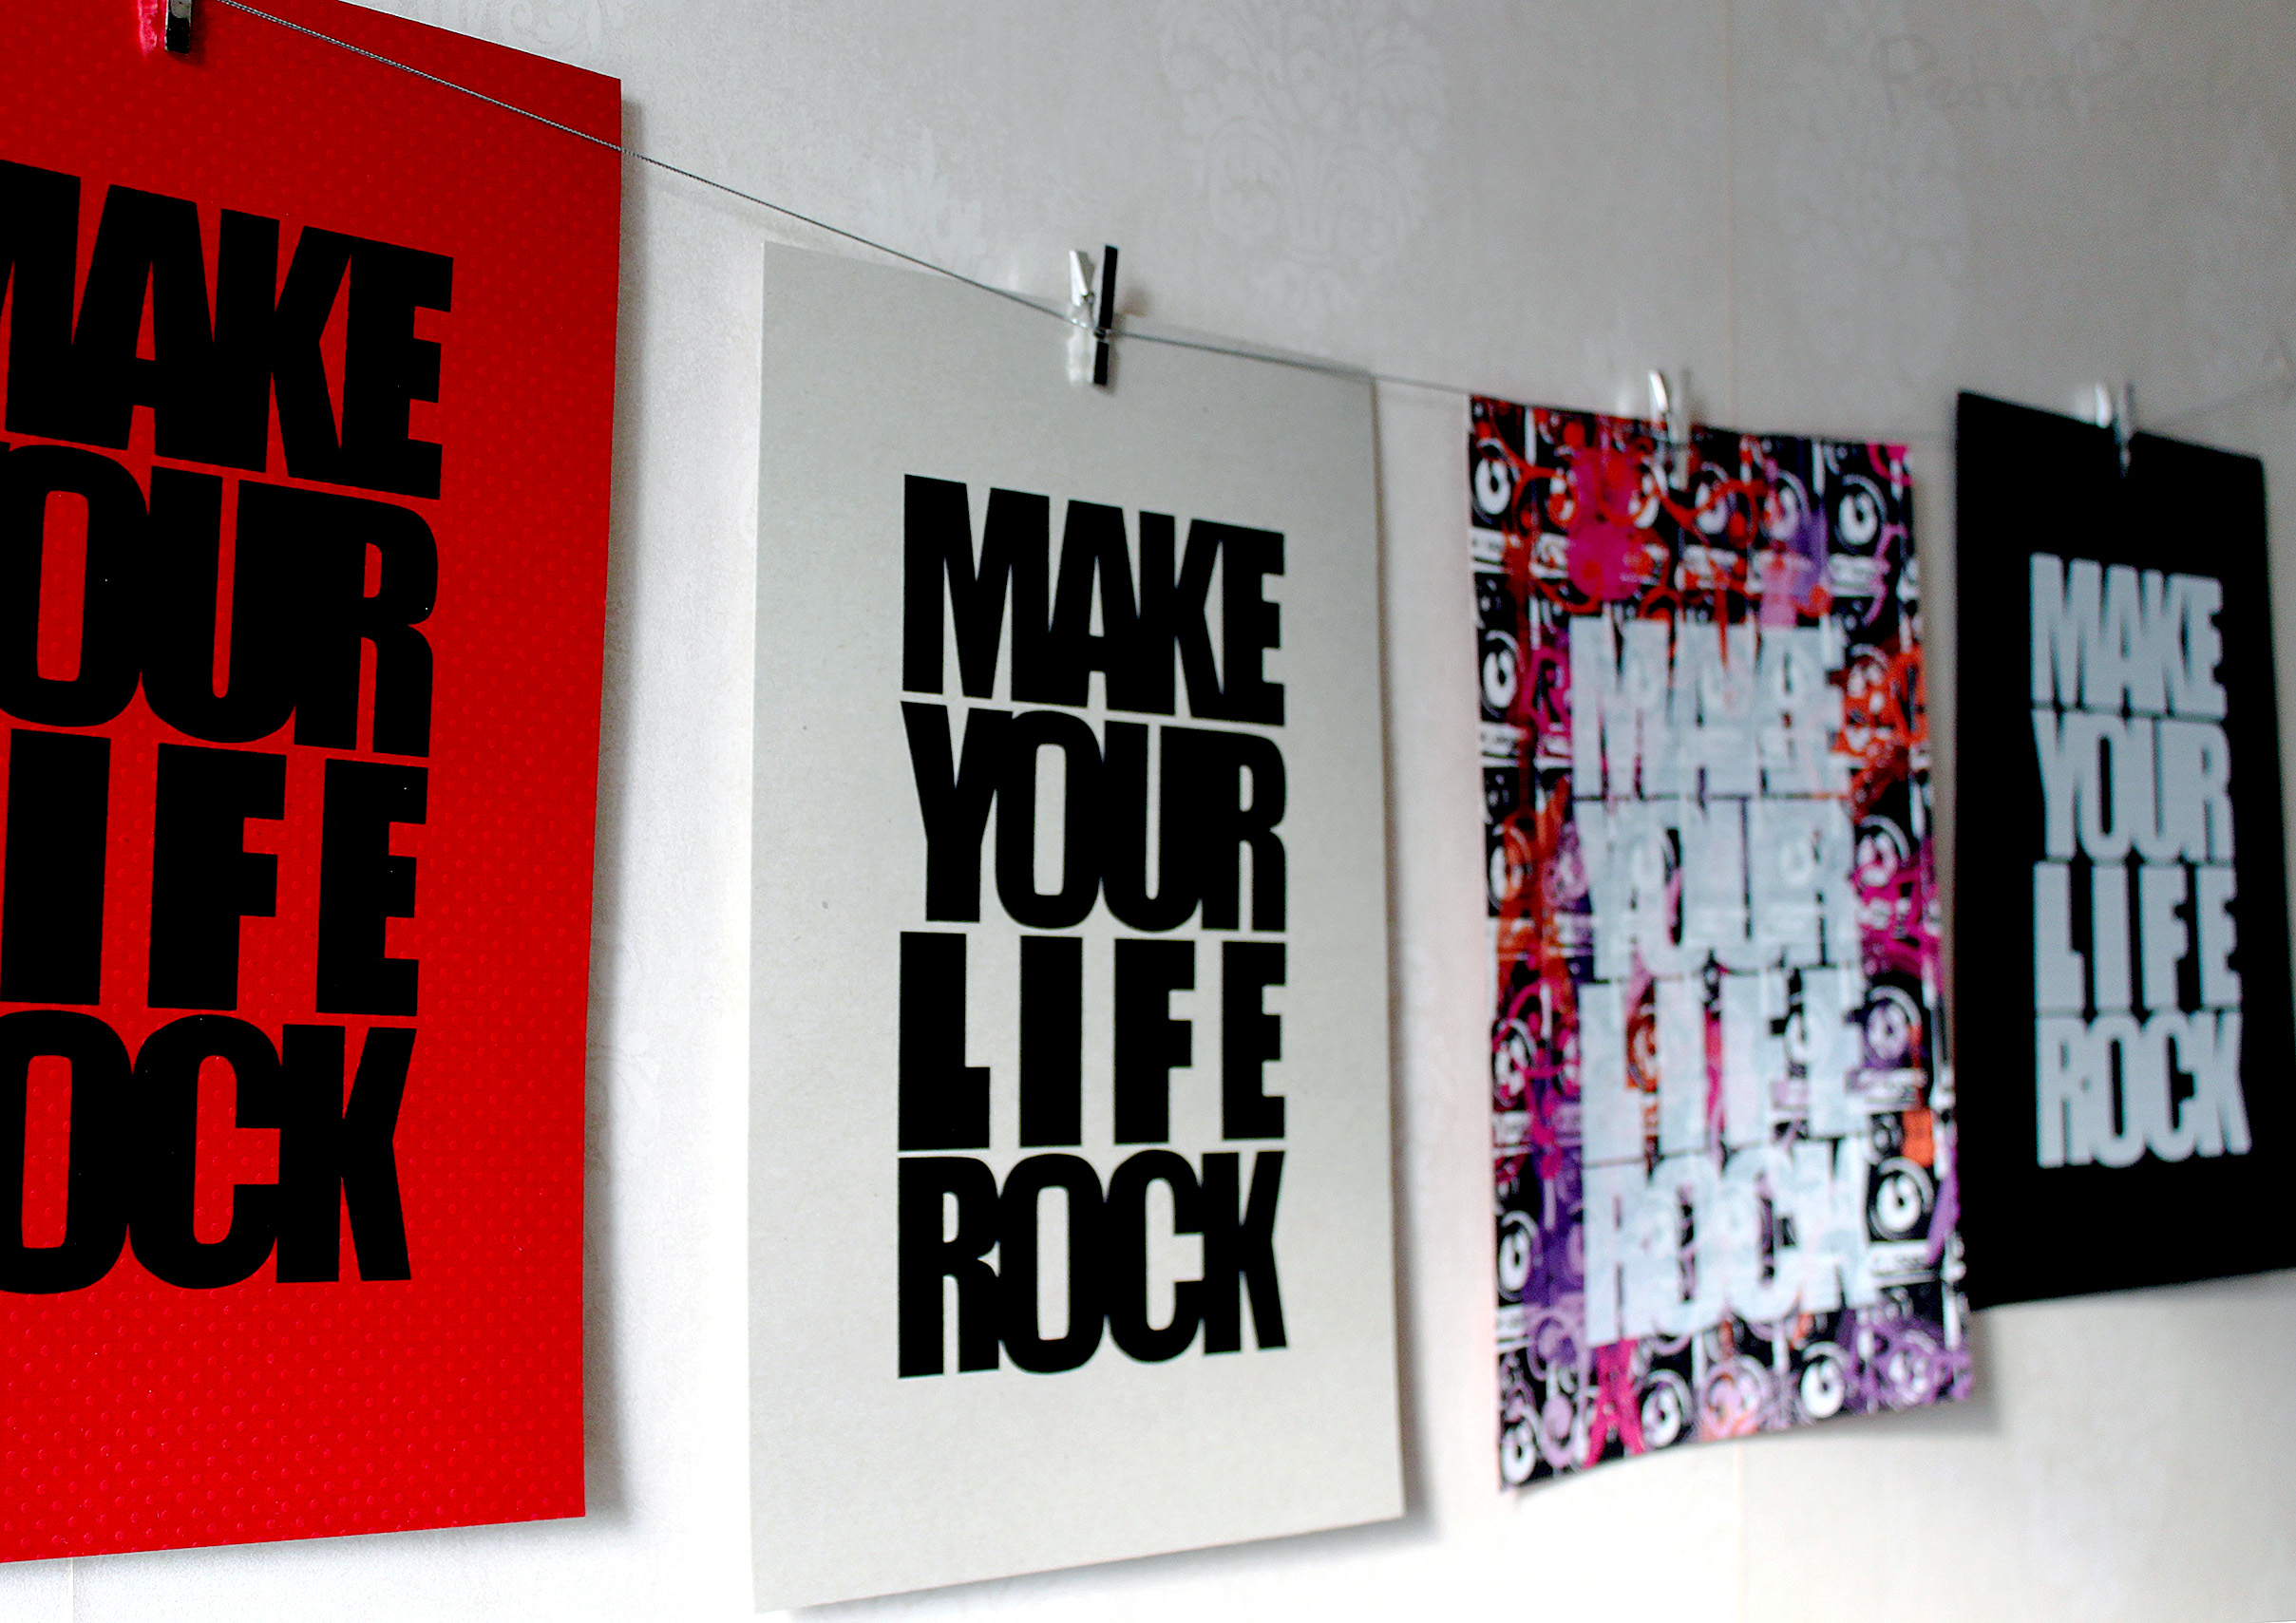 Make your life rock2